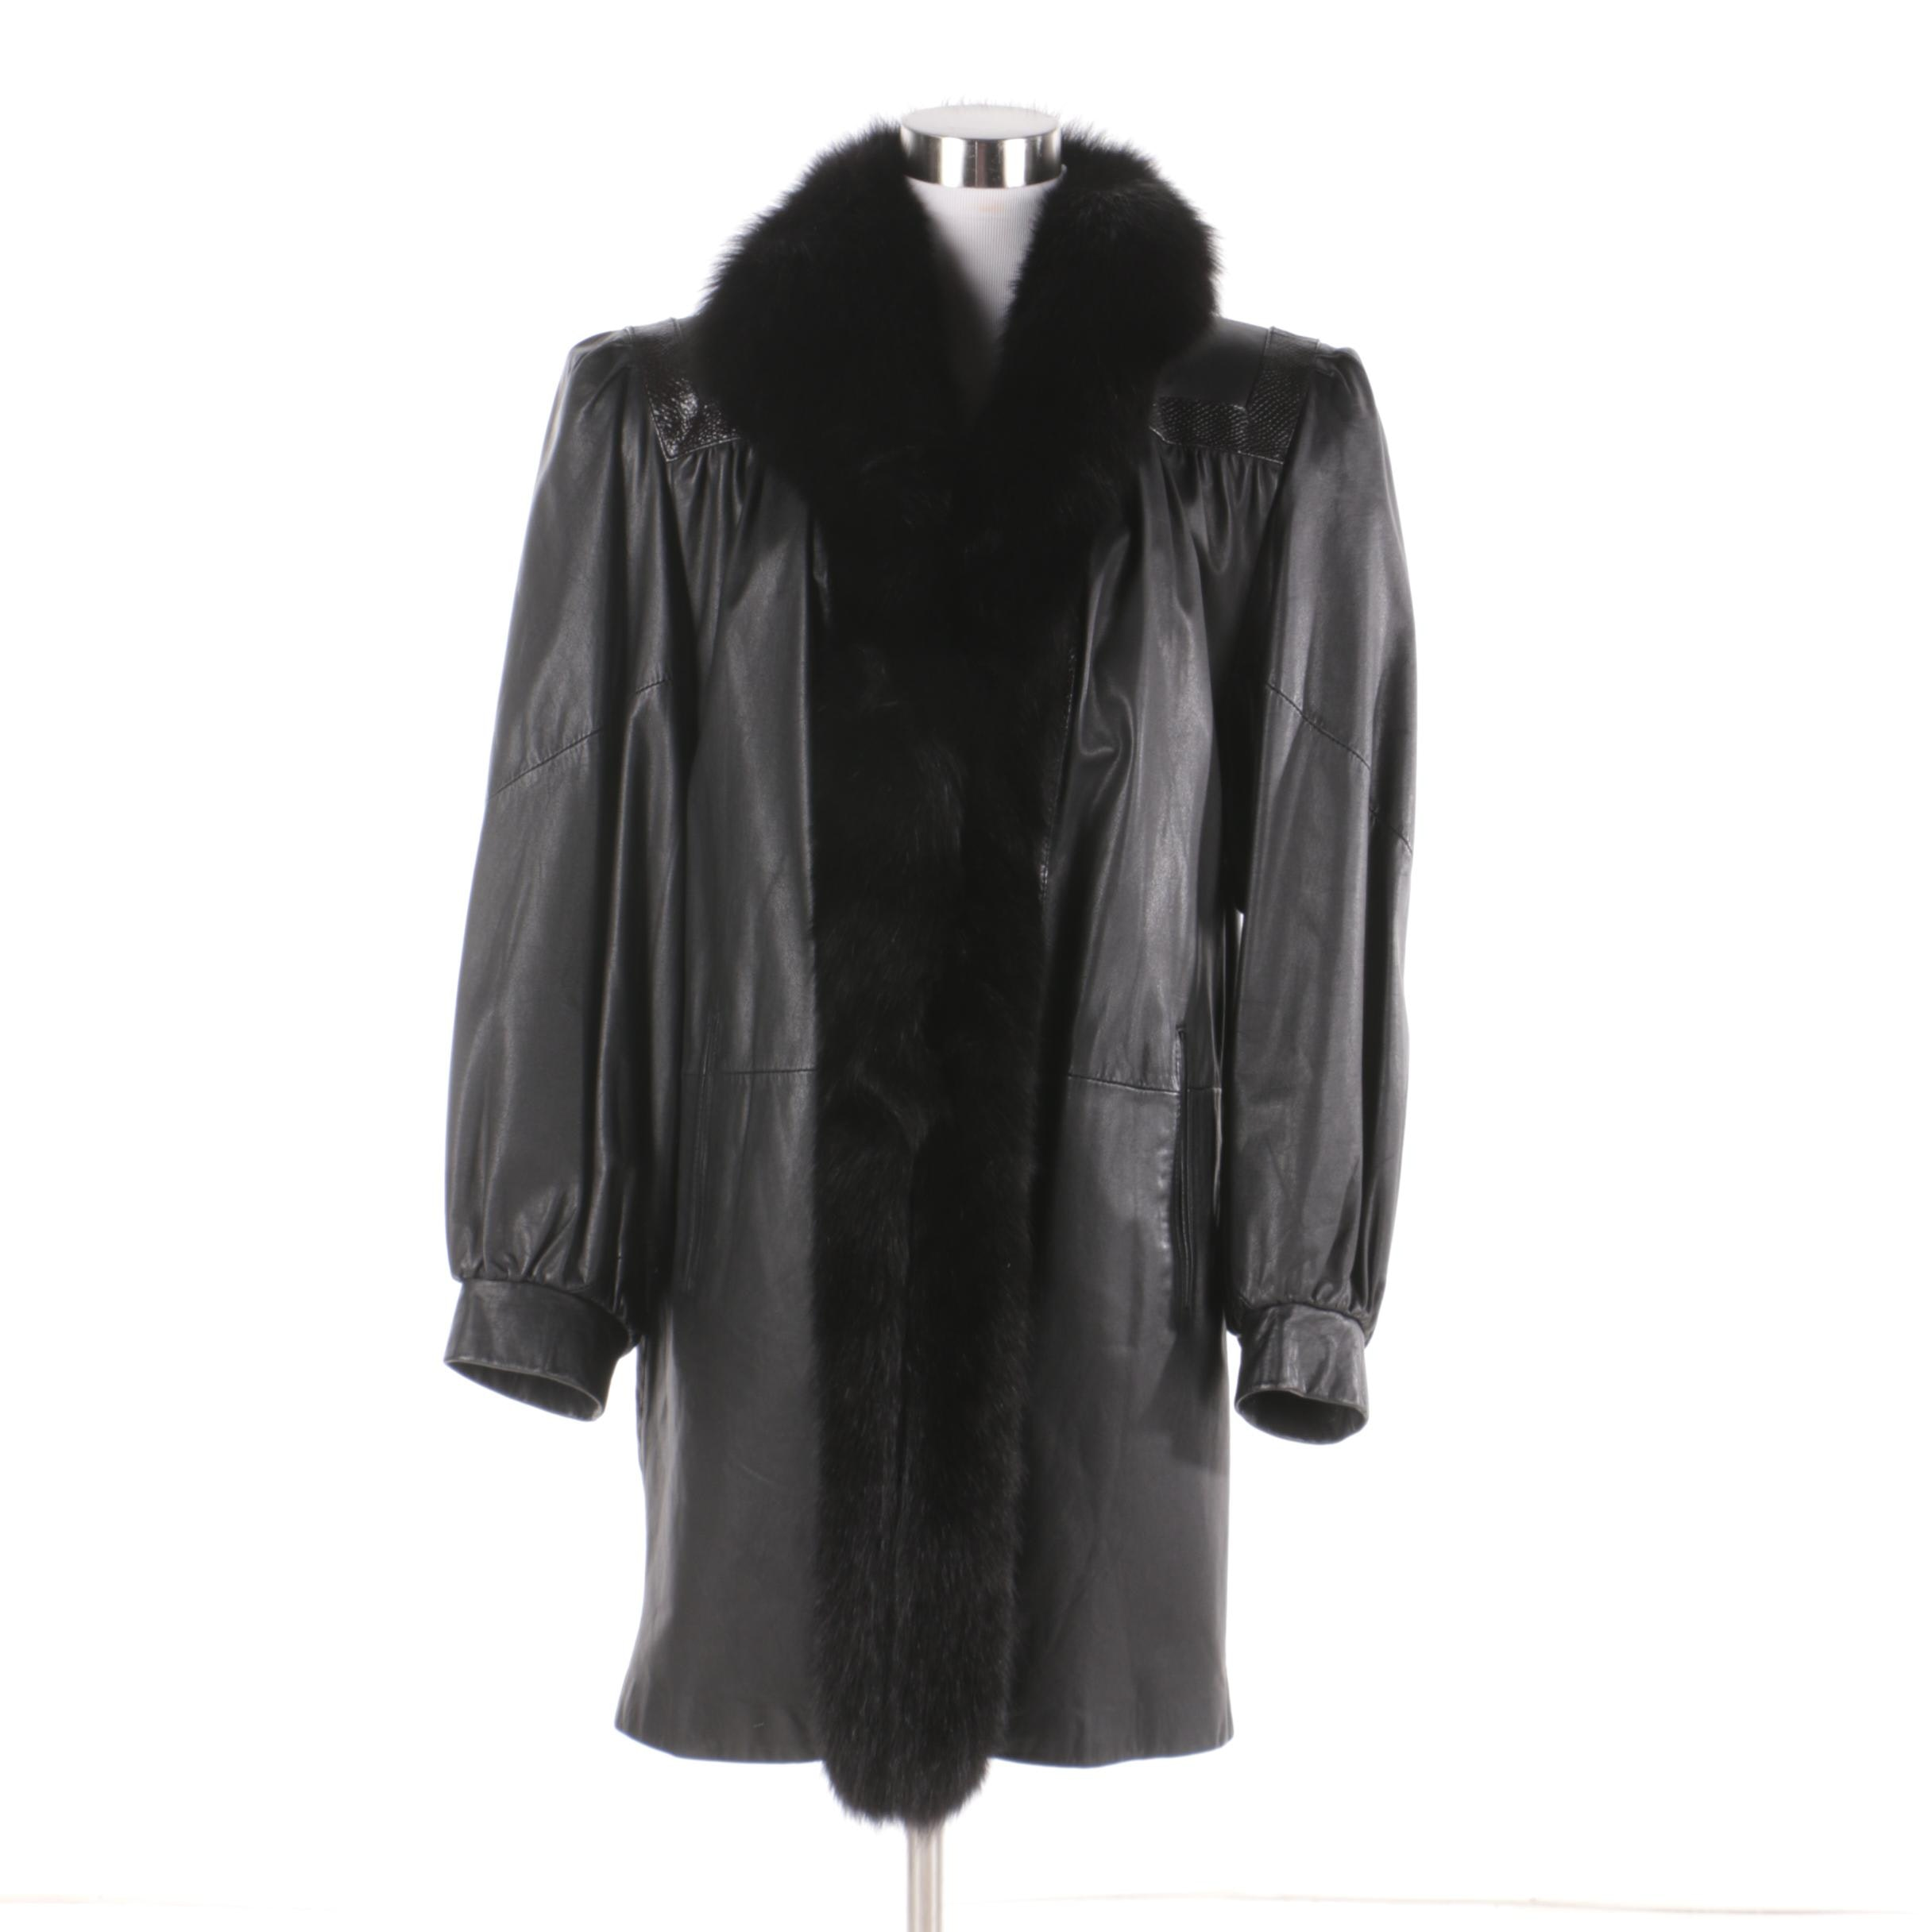 Women's Vintage Leather Coat with Fox Fur Collar